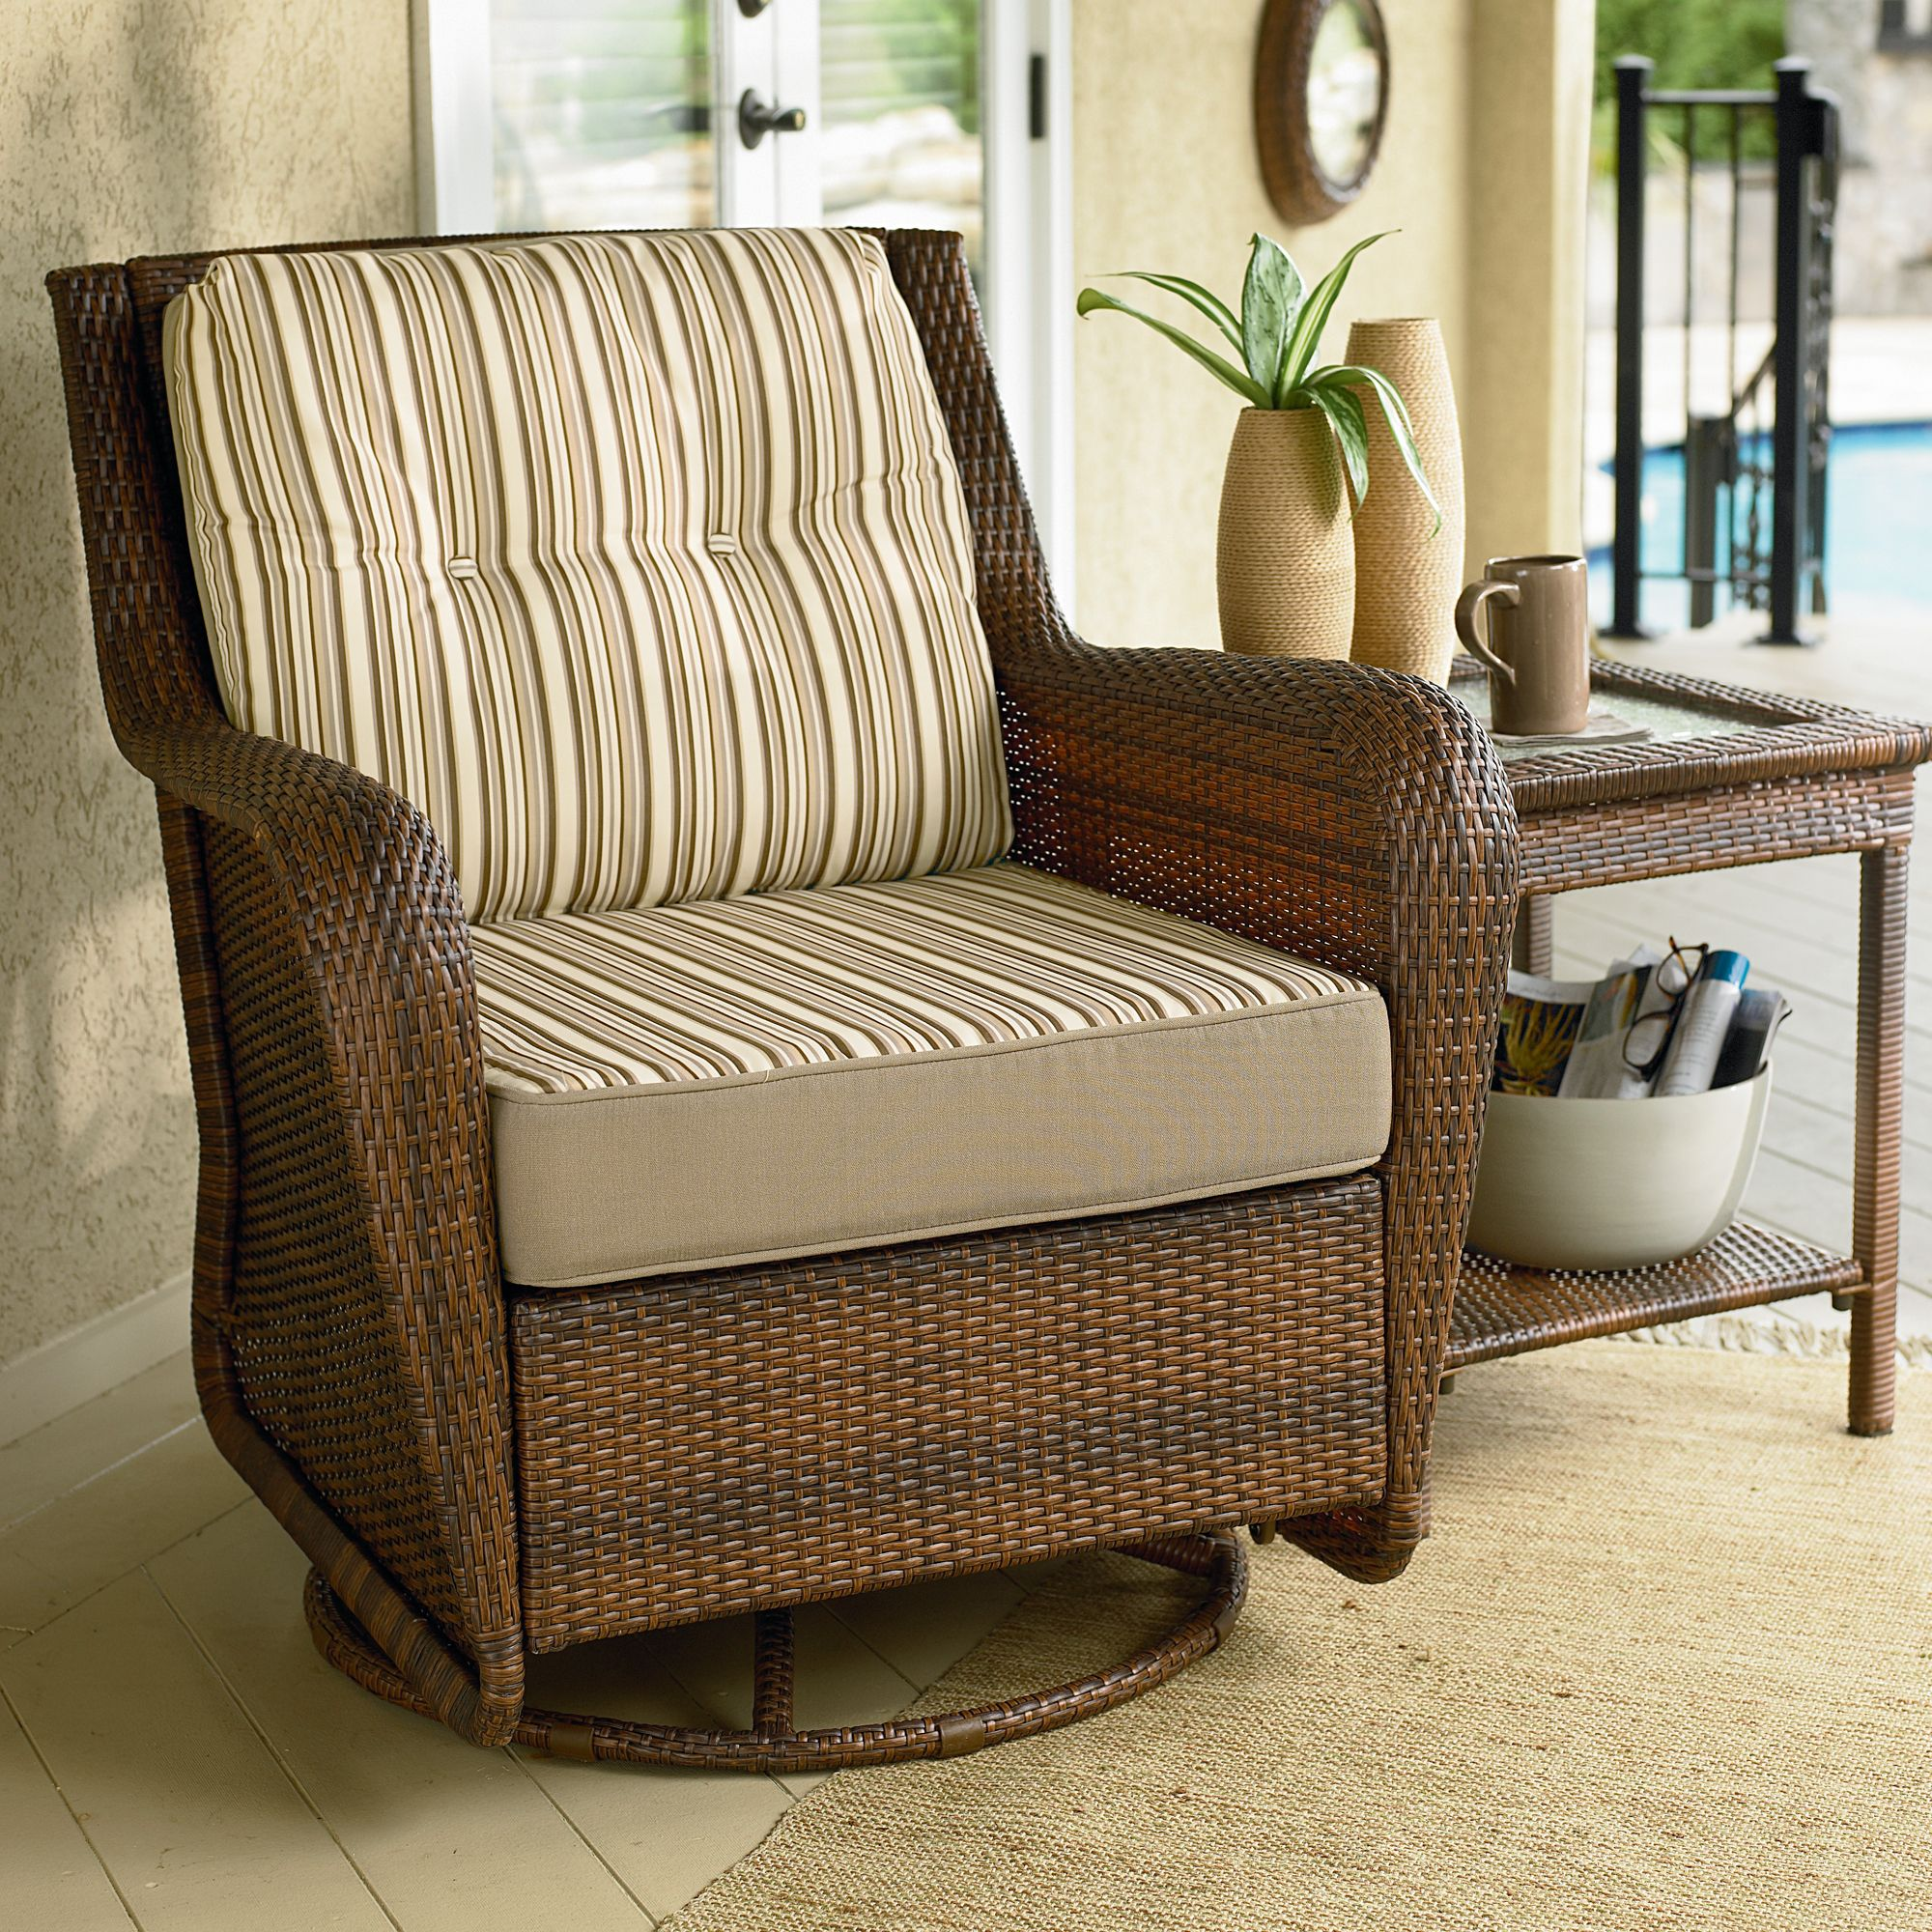 for rattan outdoors area outdoor c homelife chair decorating your best chairs